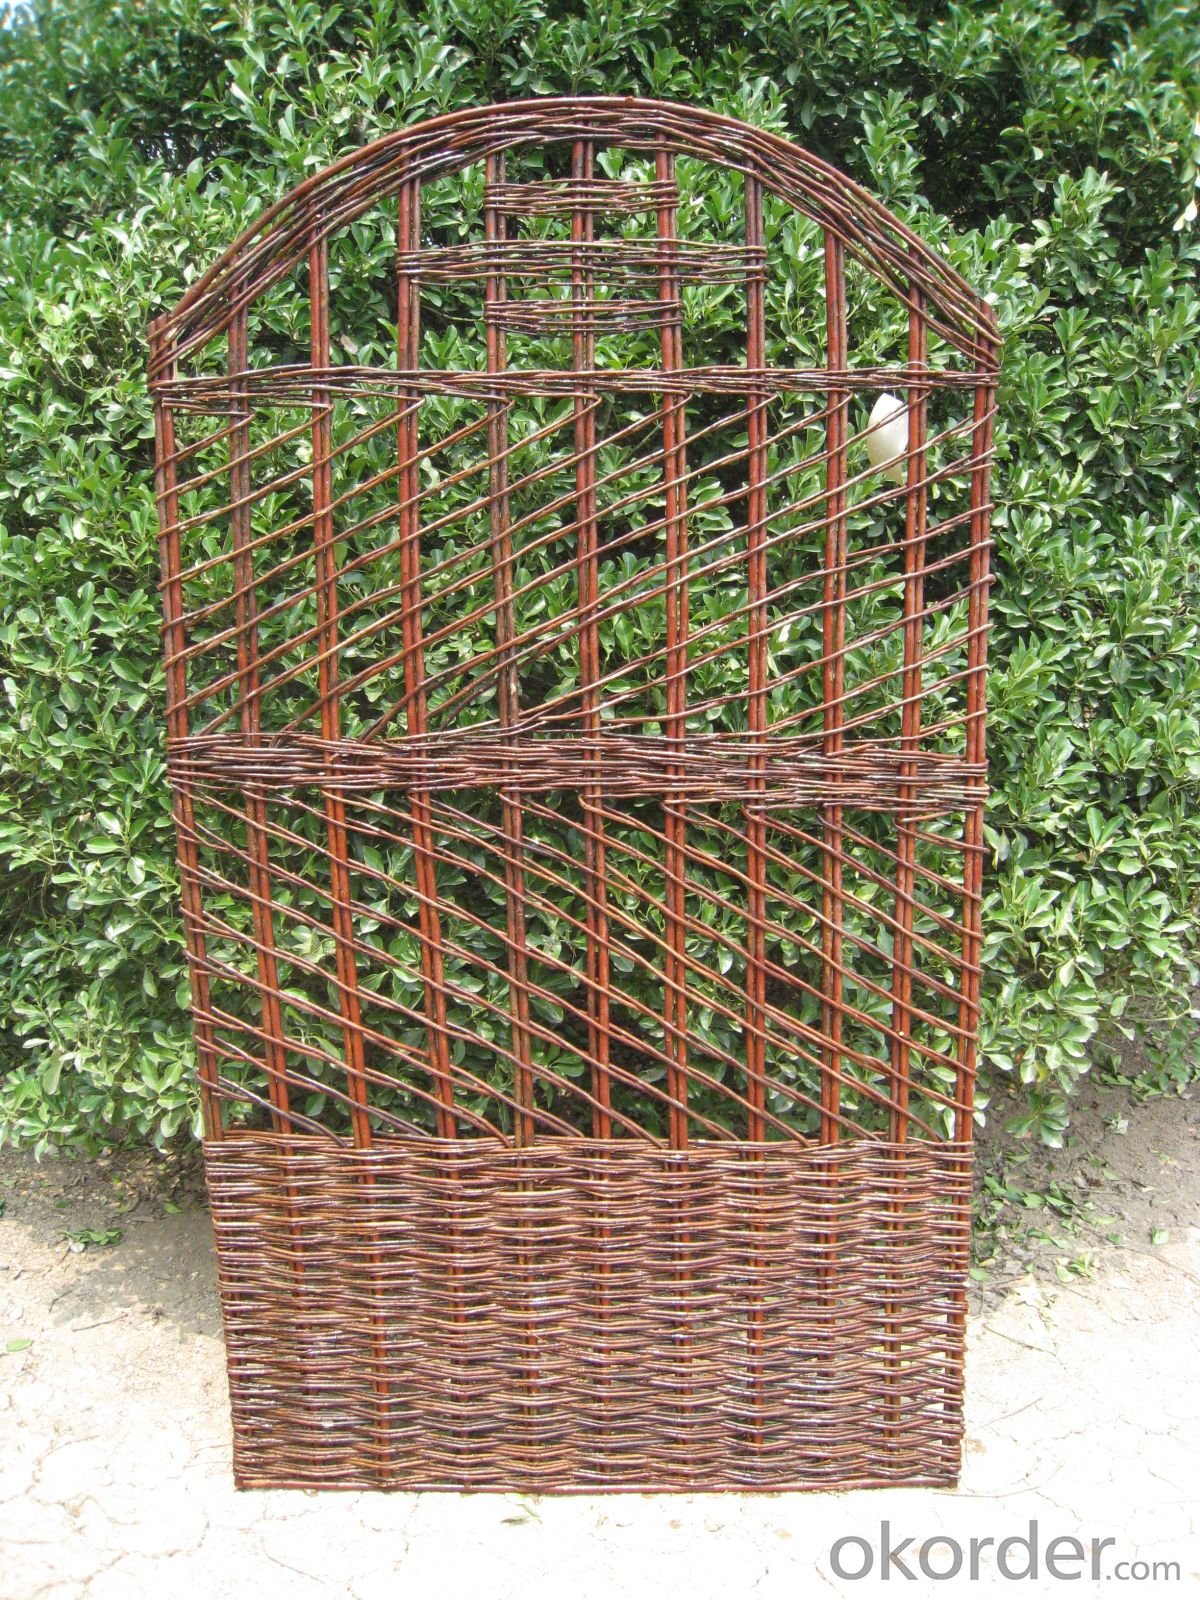 WILLOW TRELLIS NATURAL WOVEN FENCE SCREEN